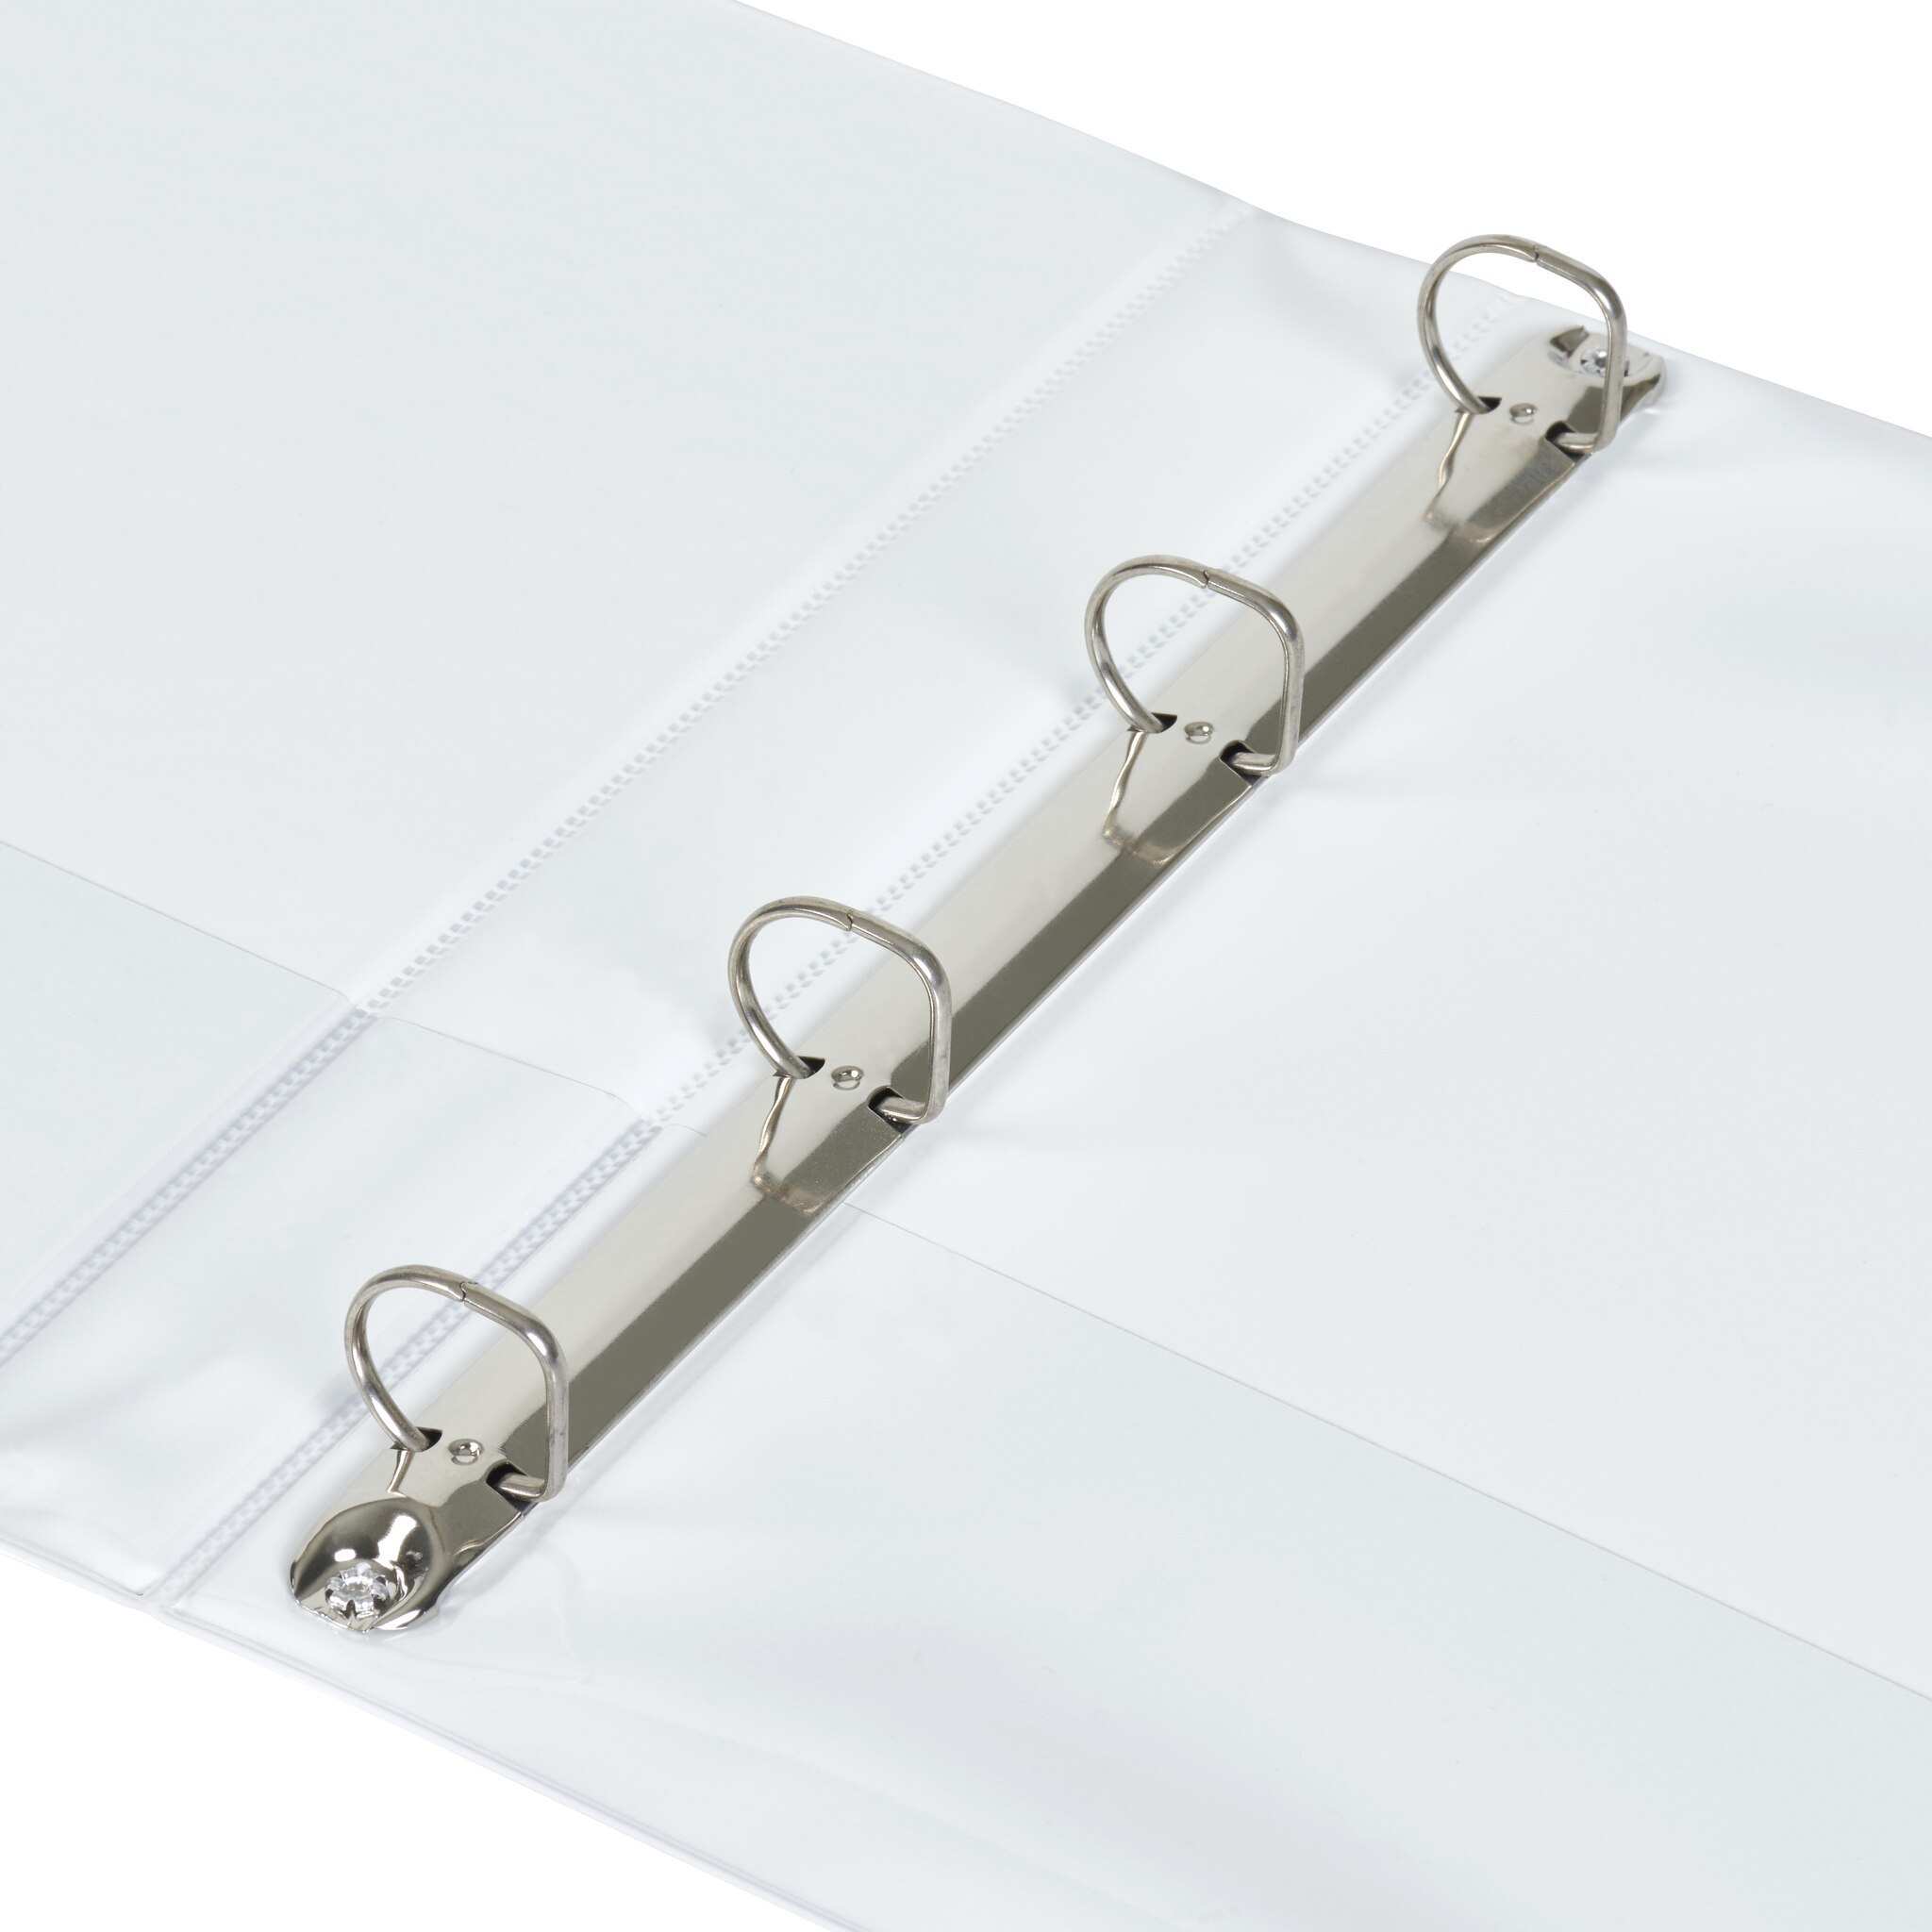 4-Ring A4 Binders